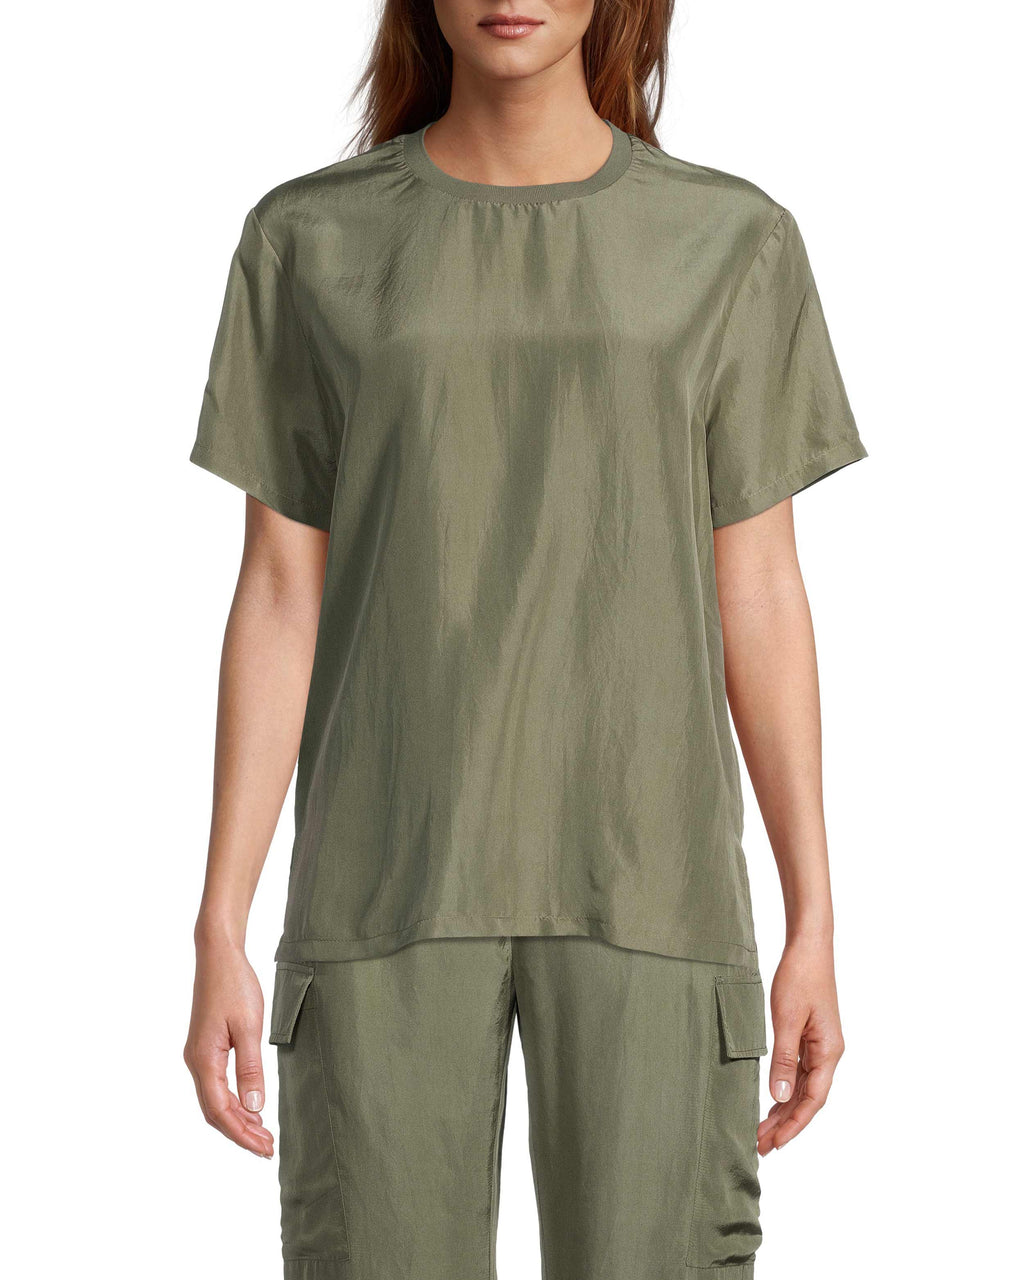 CT18681 - SOLID SILK OVERSIZED T-SHIRT - tops - blouses - Our solid silk oversized t-shirt is the perfect basic to add to your collection. Cut from 100% silk, this lightweight piece has a slight sheen to it when it catches the light. Add 1 line break Stylist Tip: Style with everything from matching cargo pants to boyfriend jeans.